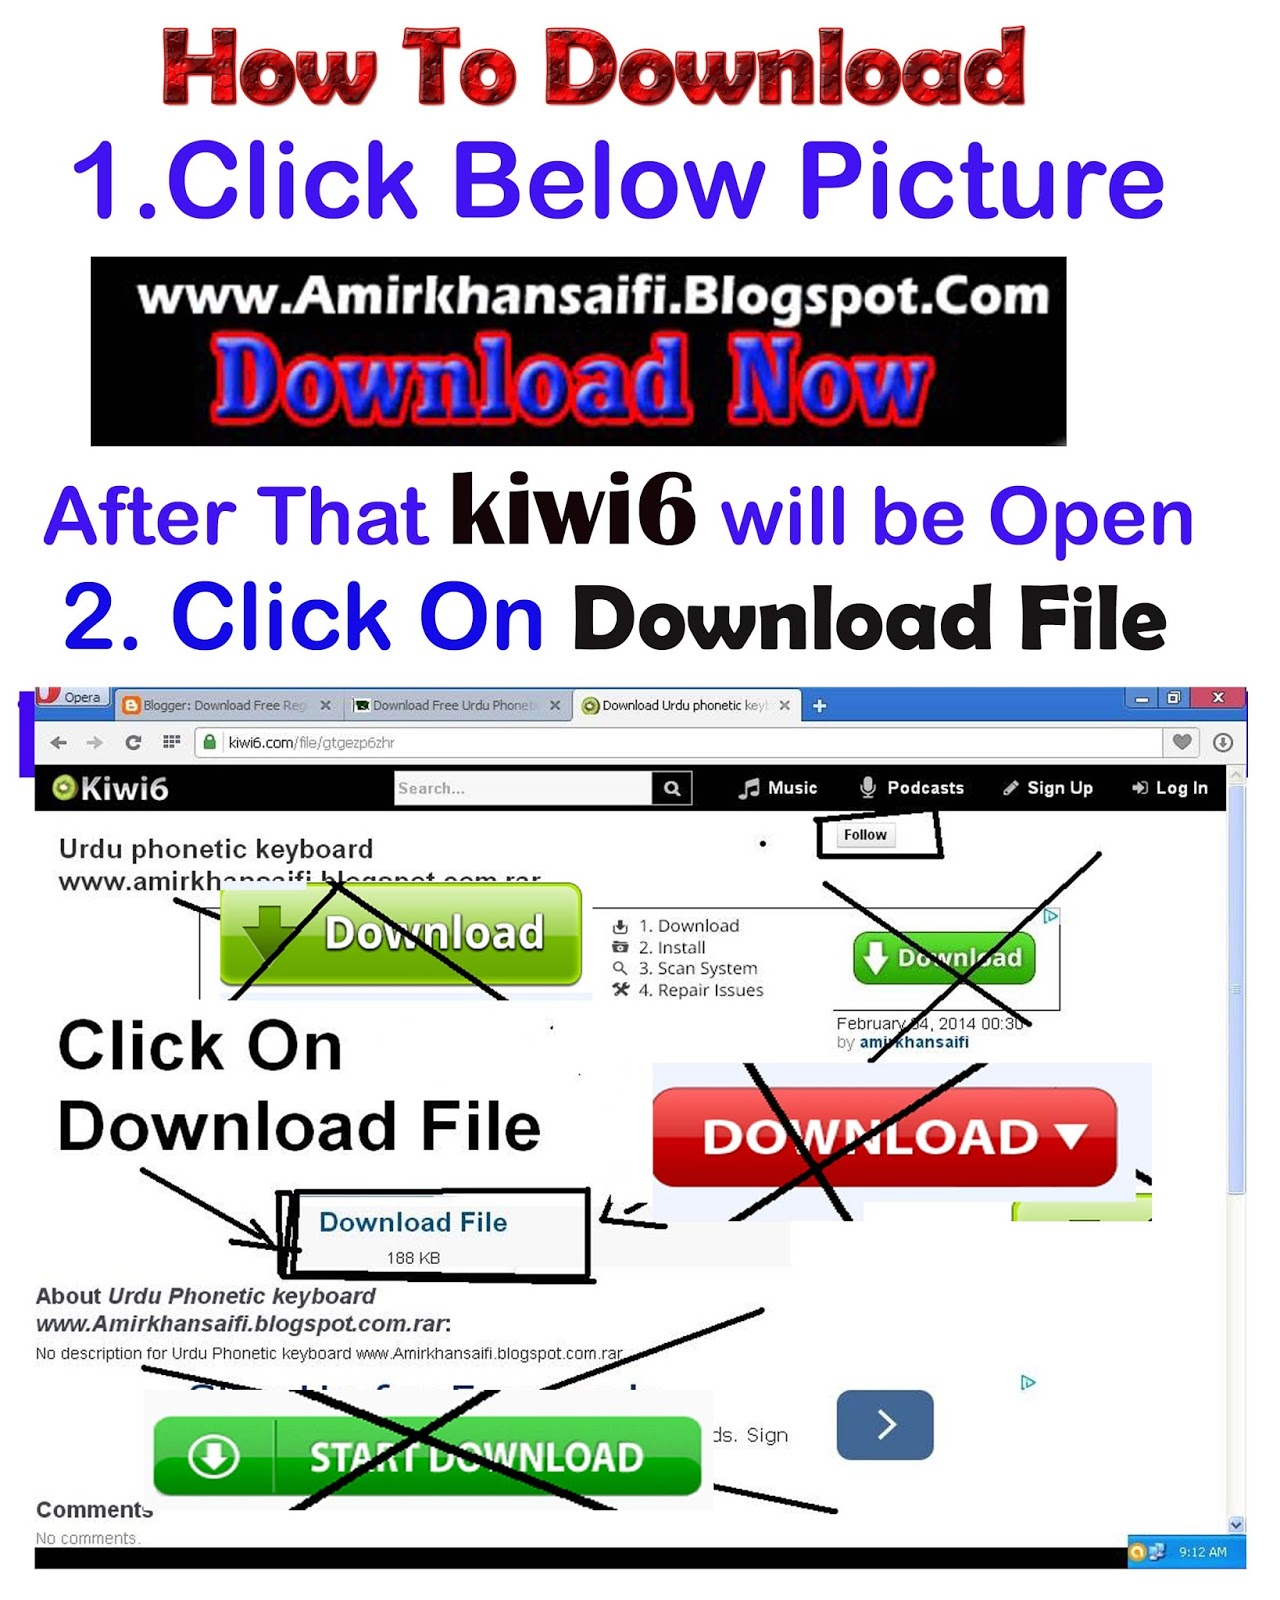 microsoft word 2007 free download for windows 10 64 bit filehippo